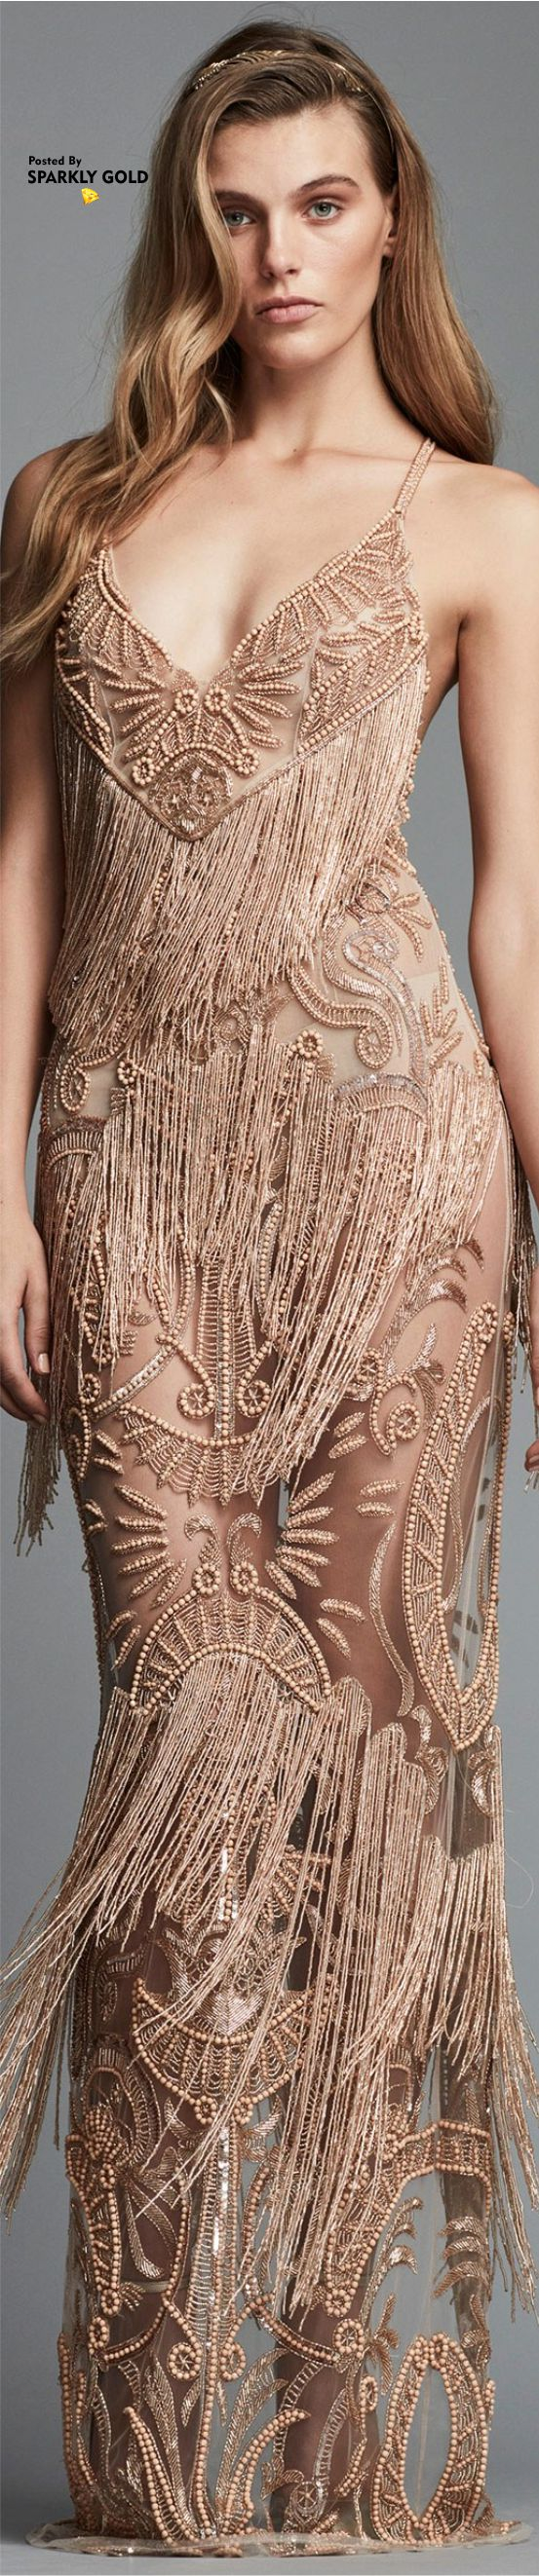 Zuhair murad spring rtw gowns oh such beautiful gowns